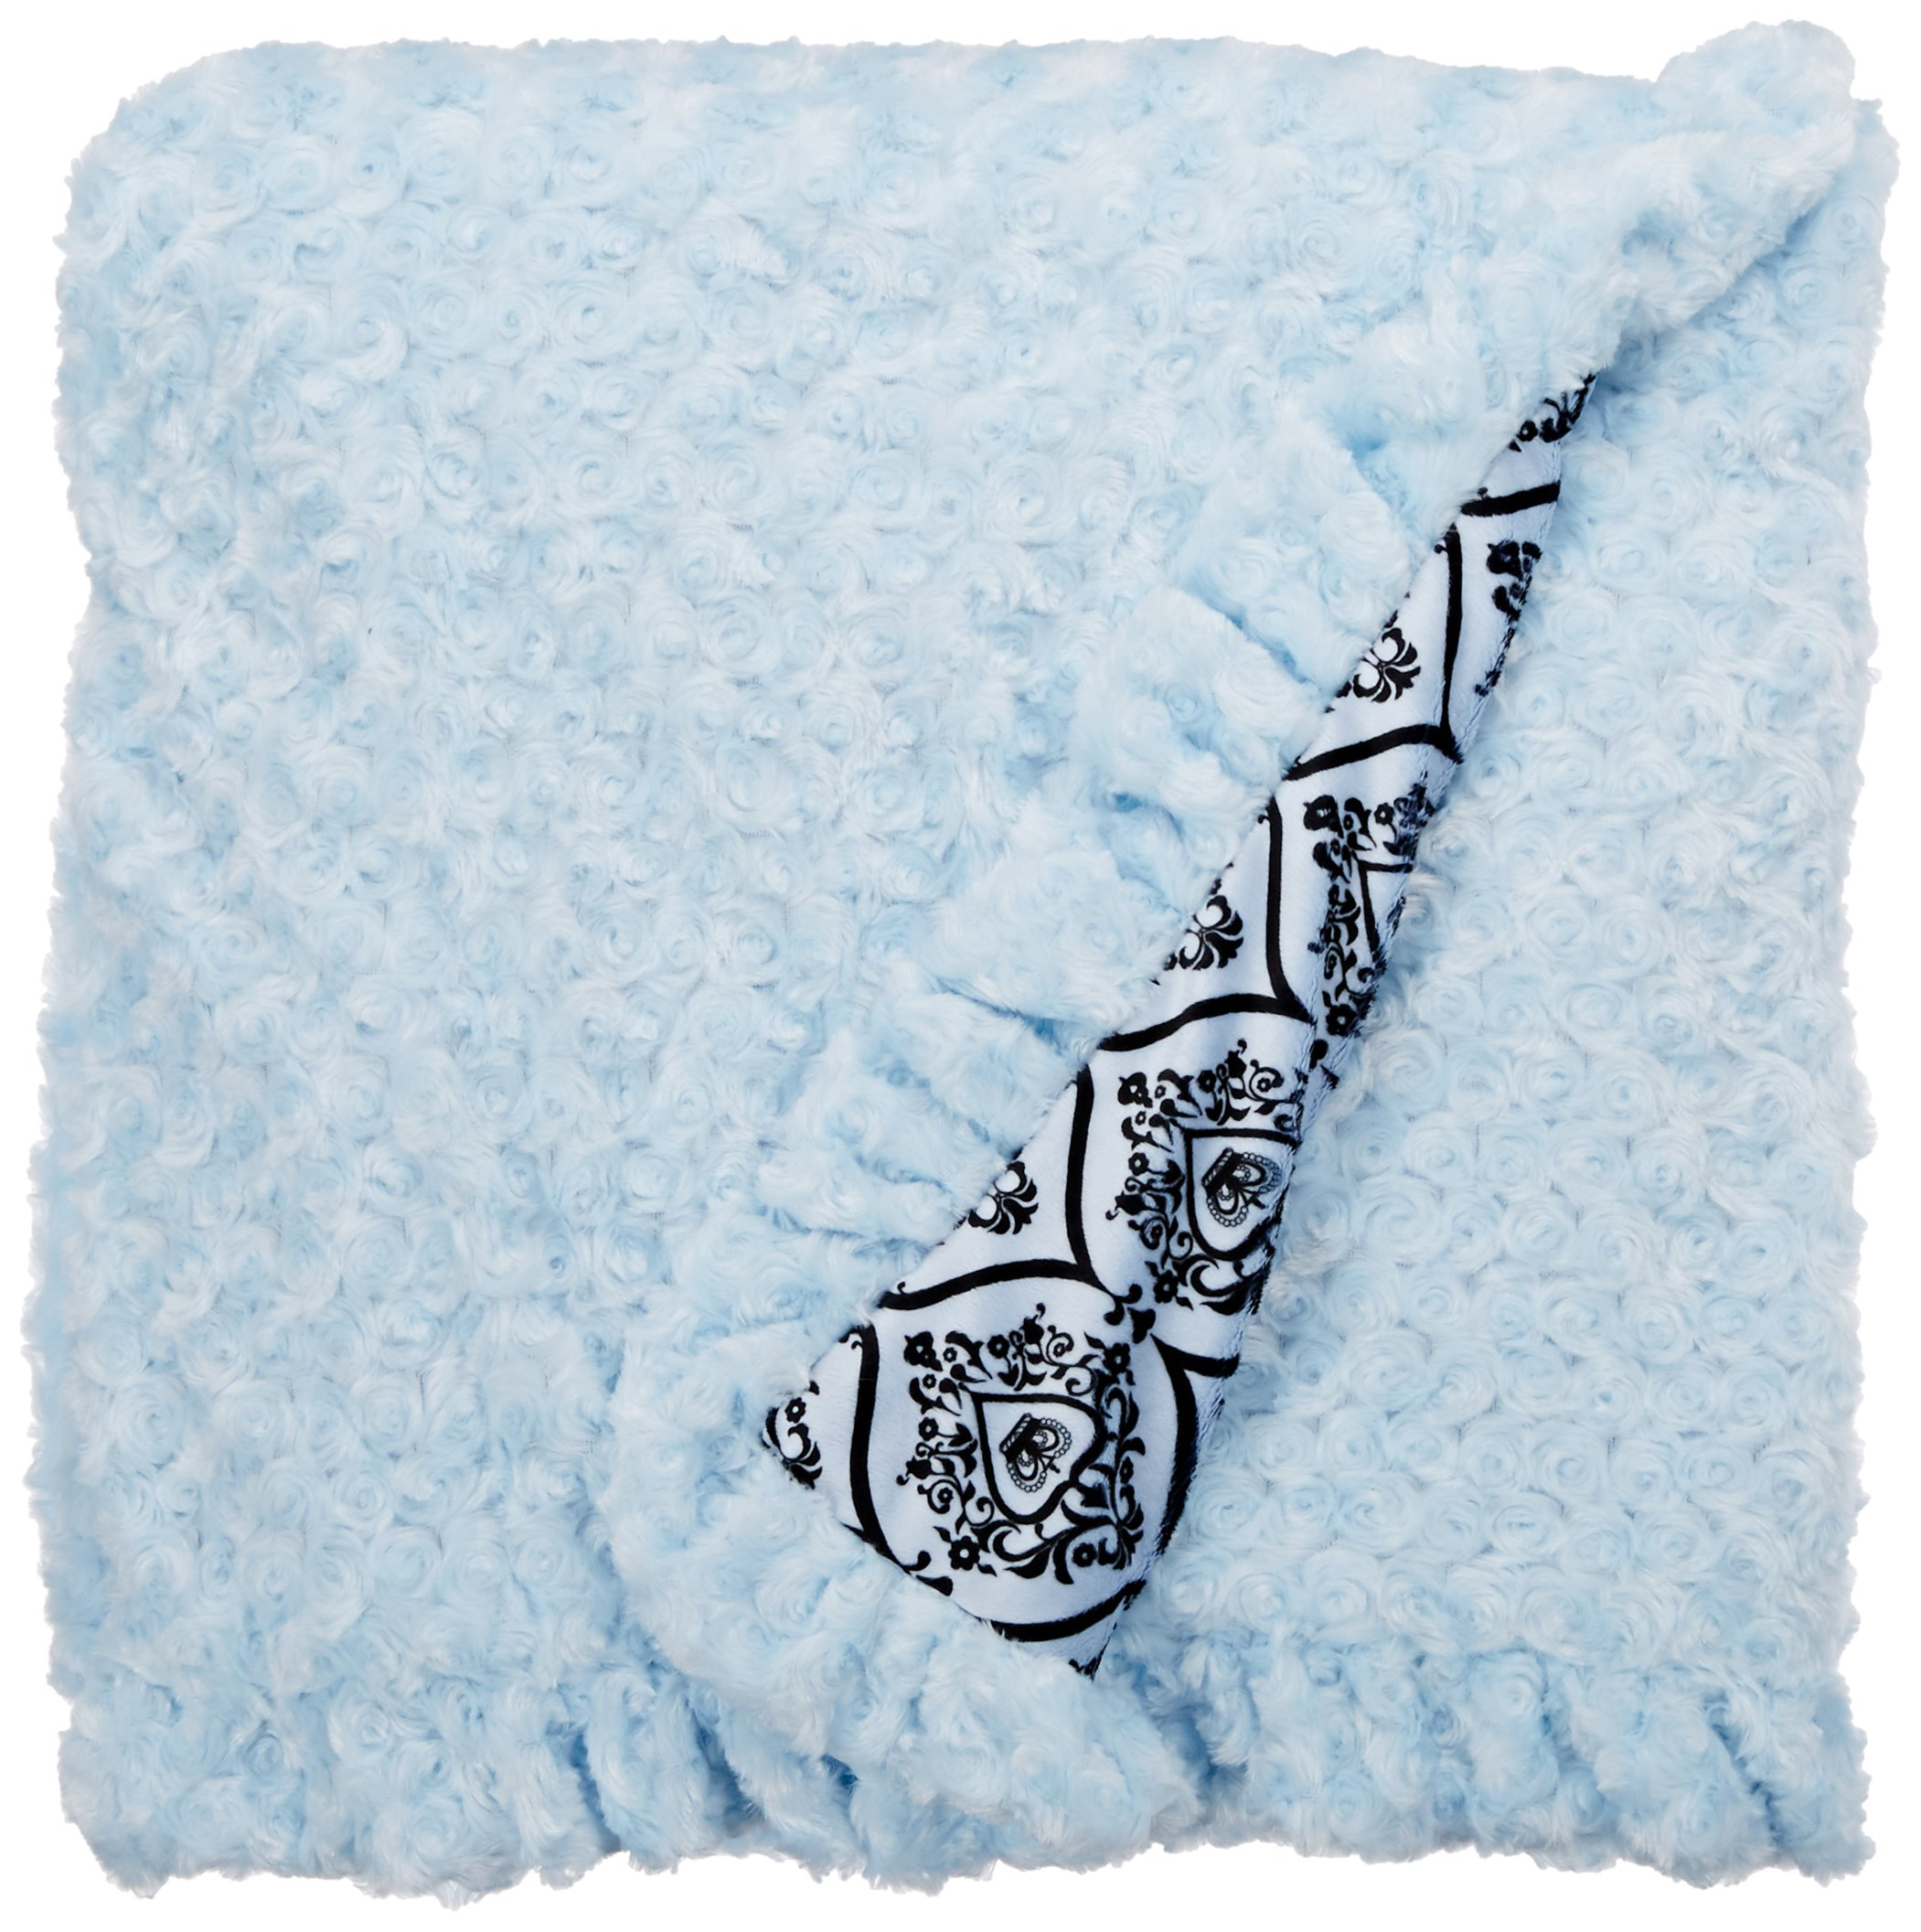 BESSIE AND BARNIE Pet Blanket, X-Large, Versailles Blue/Blue Sky with Ruffle